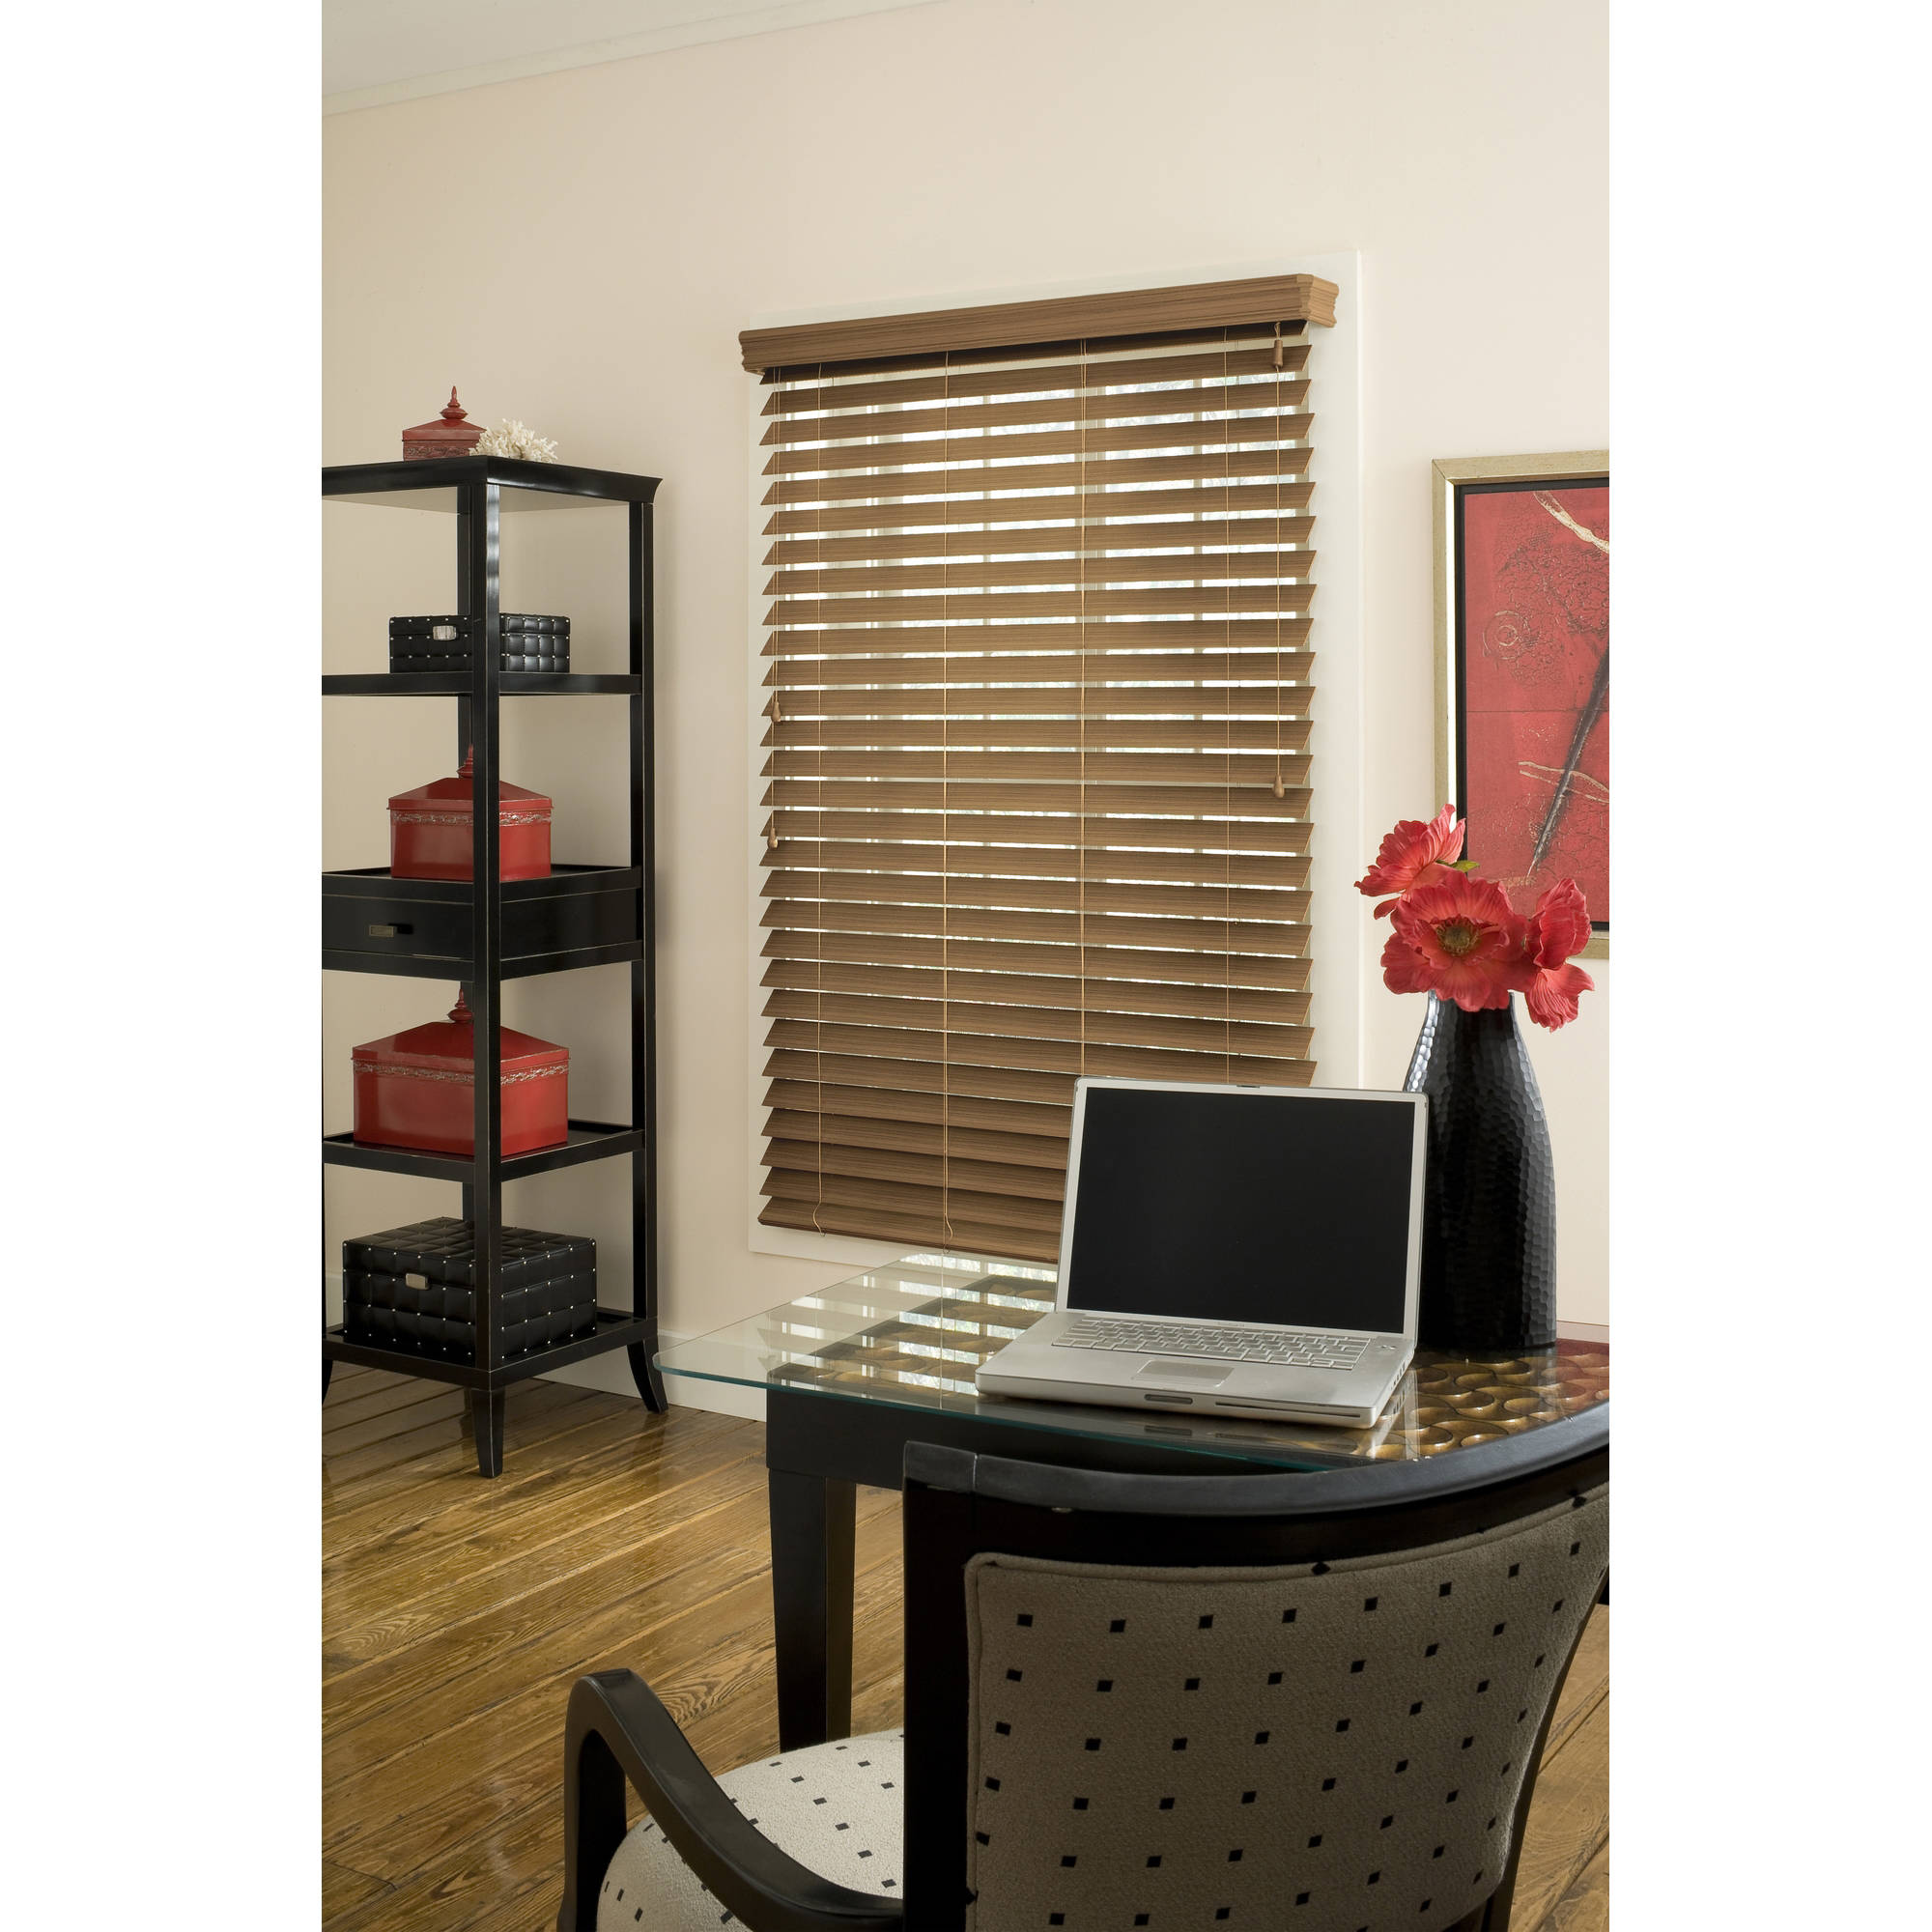 "Richfield Studio 2.5"" Faux Wood Blind, Maple, 48"" Length"